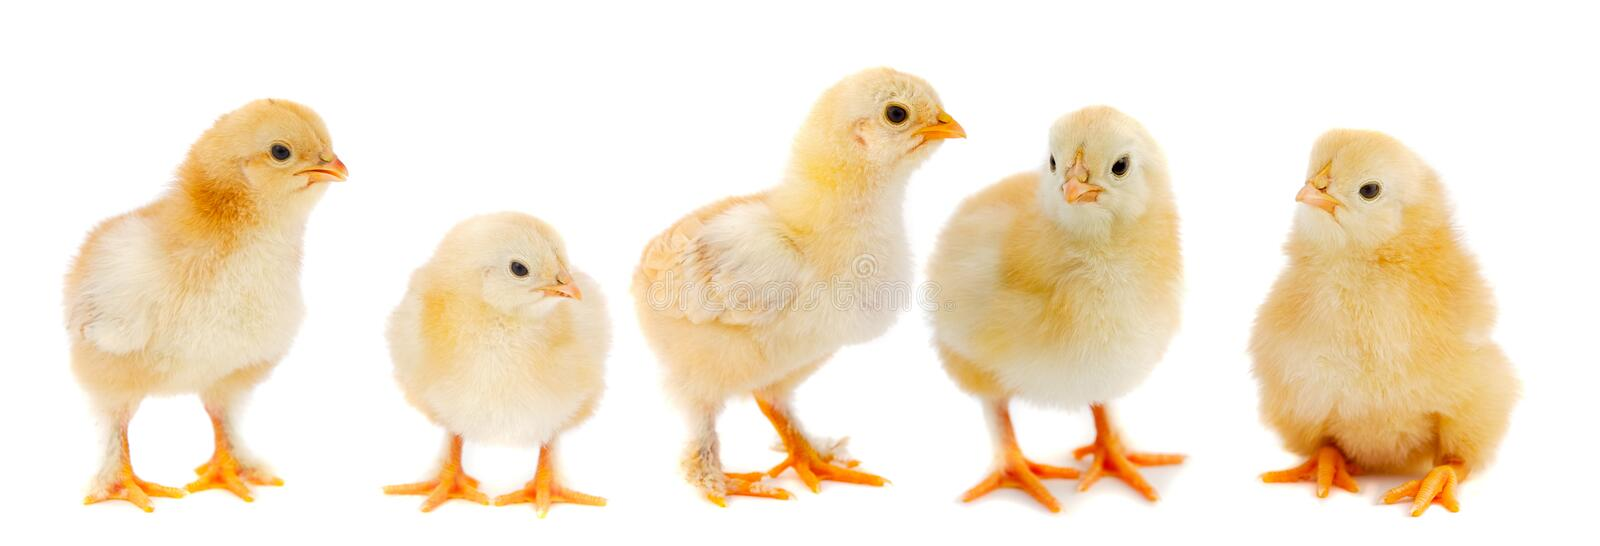 Adorable chicks. A over white background